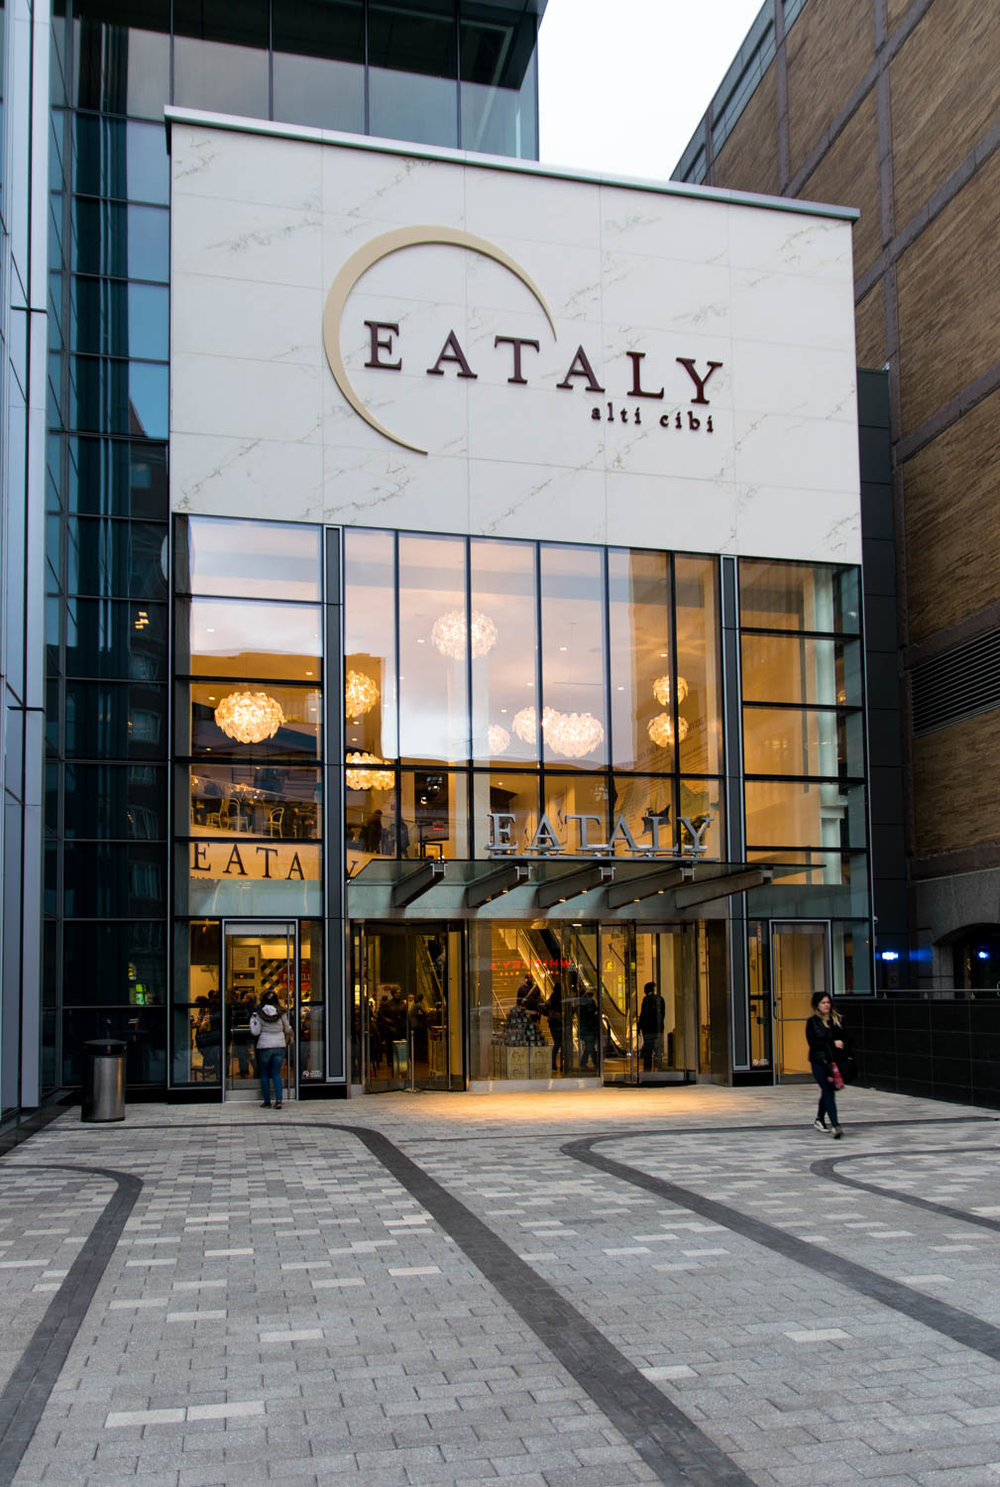 Eataly - Photo Lenox Hotel properites.